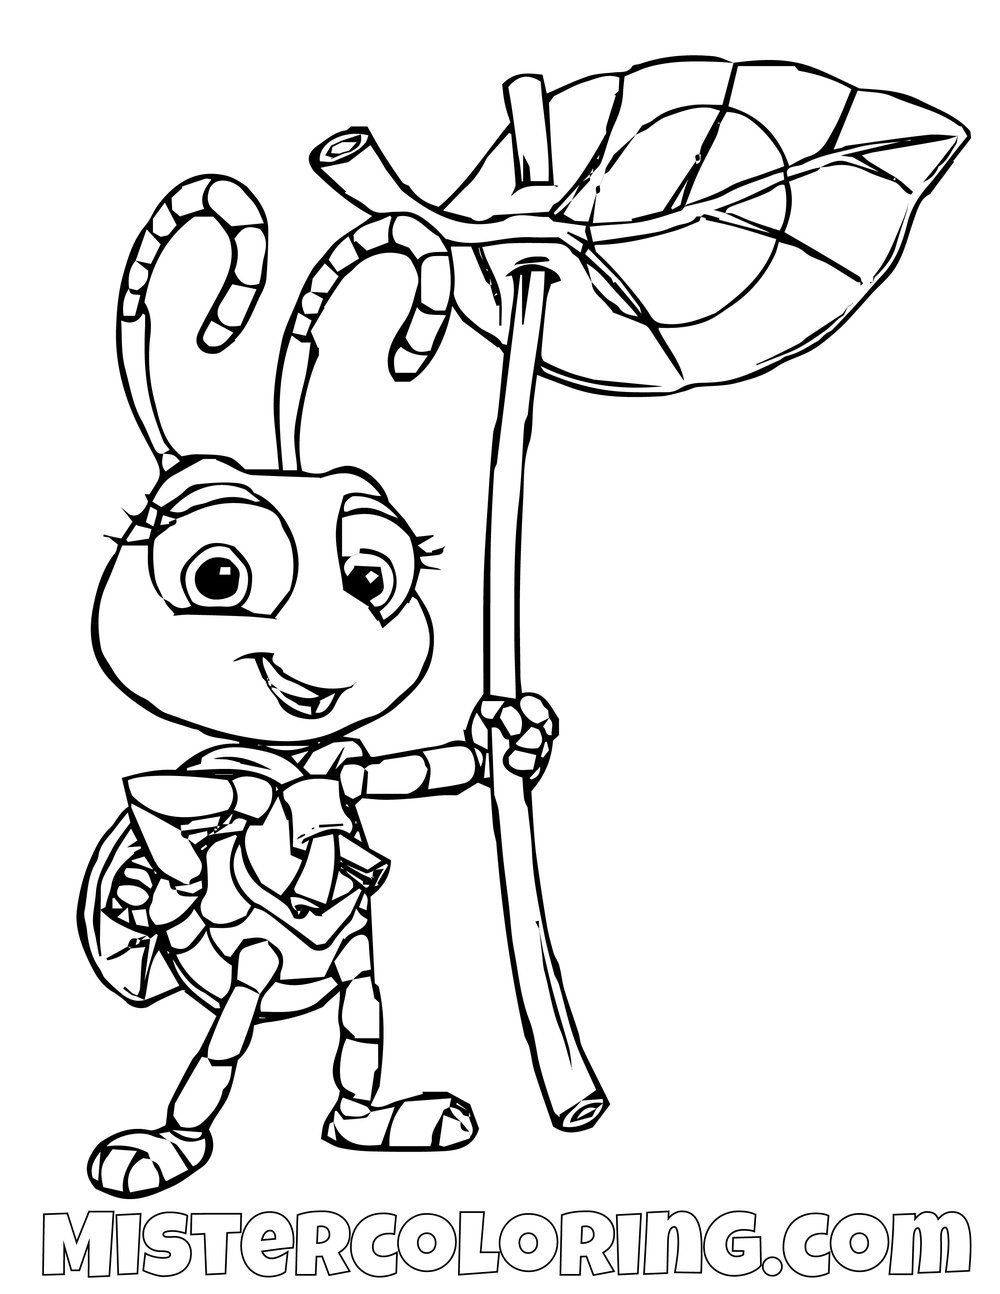 Bugs Life Coloring Pages A Bug S Life Coloring Pages For Kids Mister Coloring Unicorn Coloring Pages Monster Coloring Pages Cartoon Coloring Pages